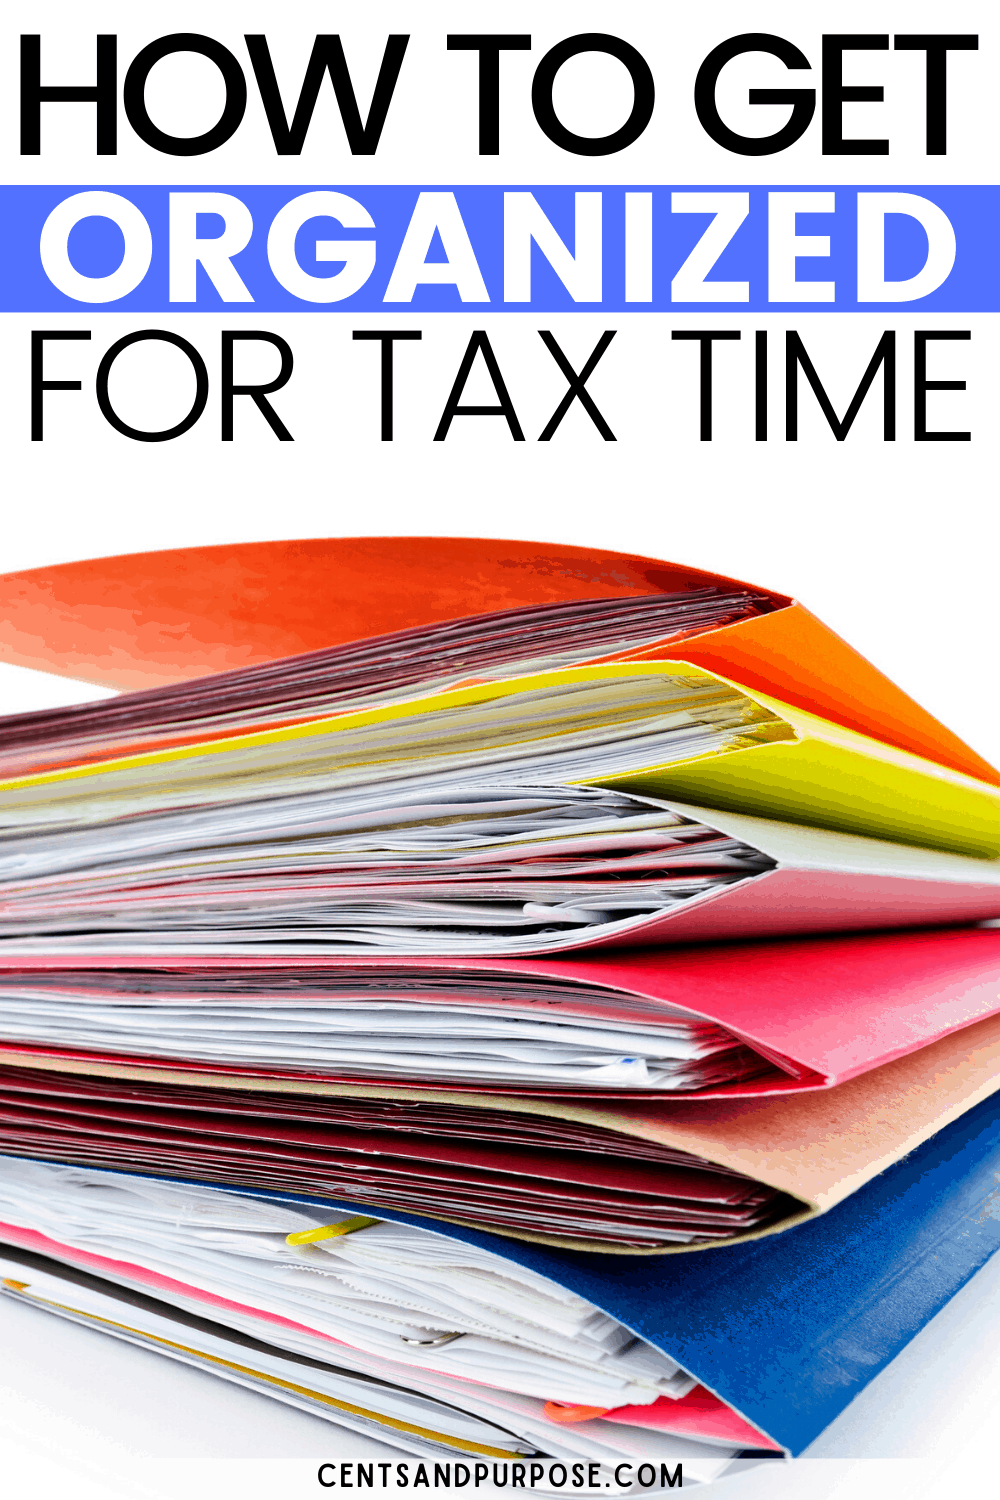 Pile of colored folders stuffed with papers and text that reads: How to get organized for tax time